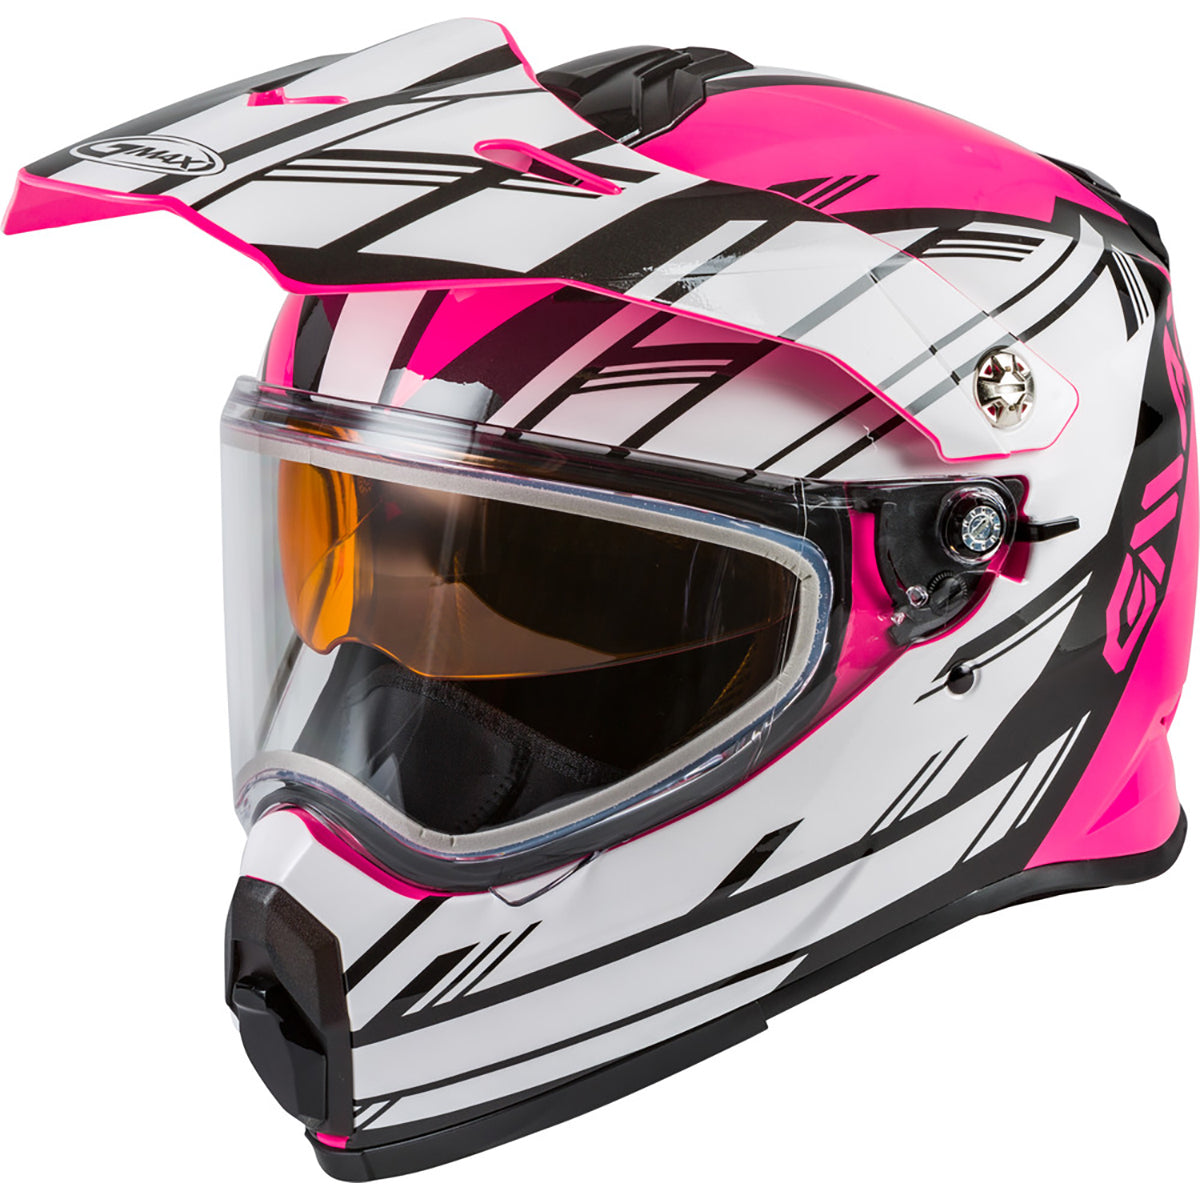 GMAX AT-21Y Epic Youth Snow Helmets New - Missing Tags-72-7213-2